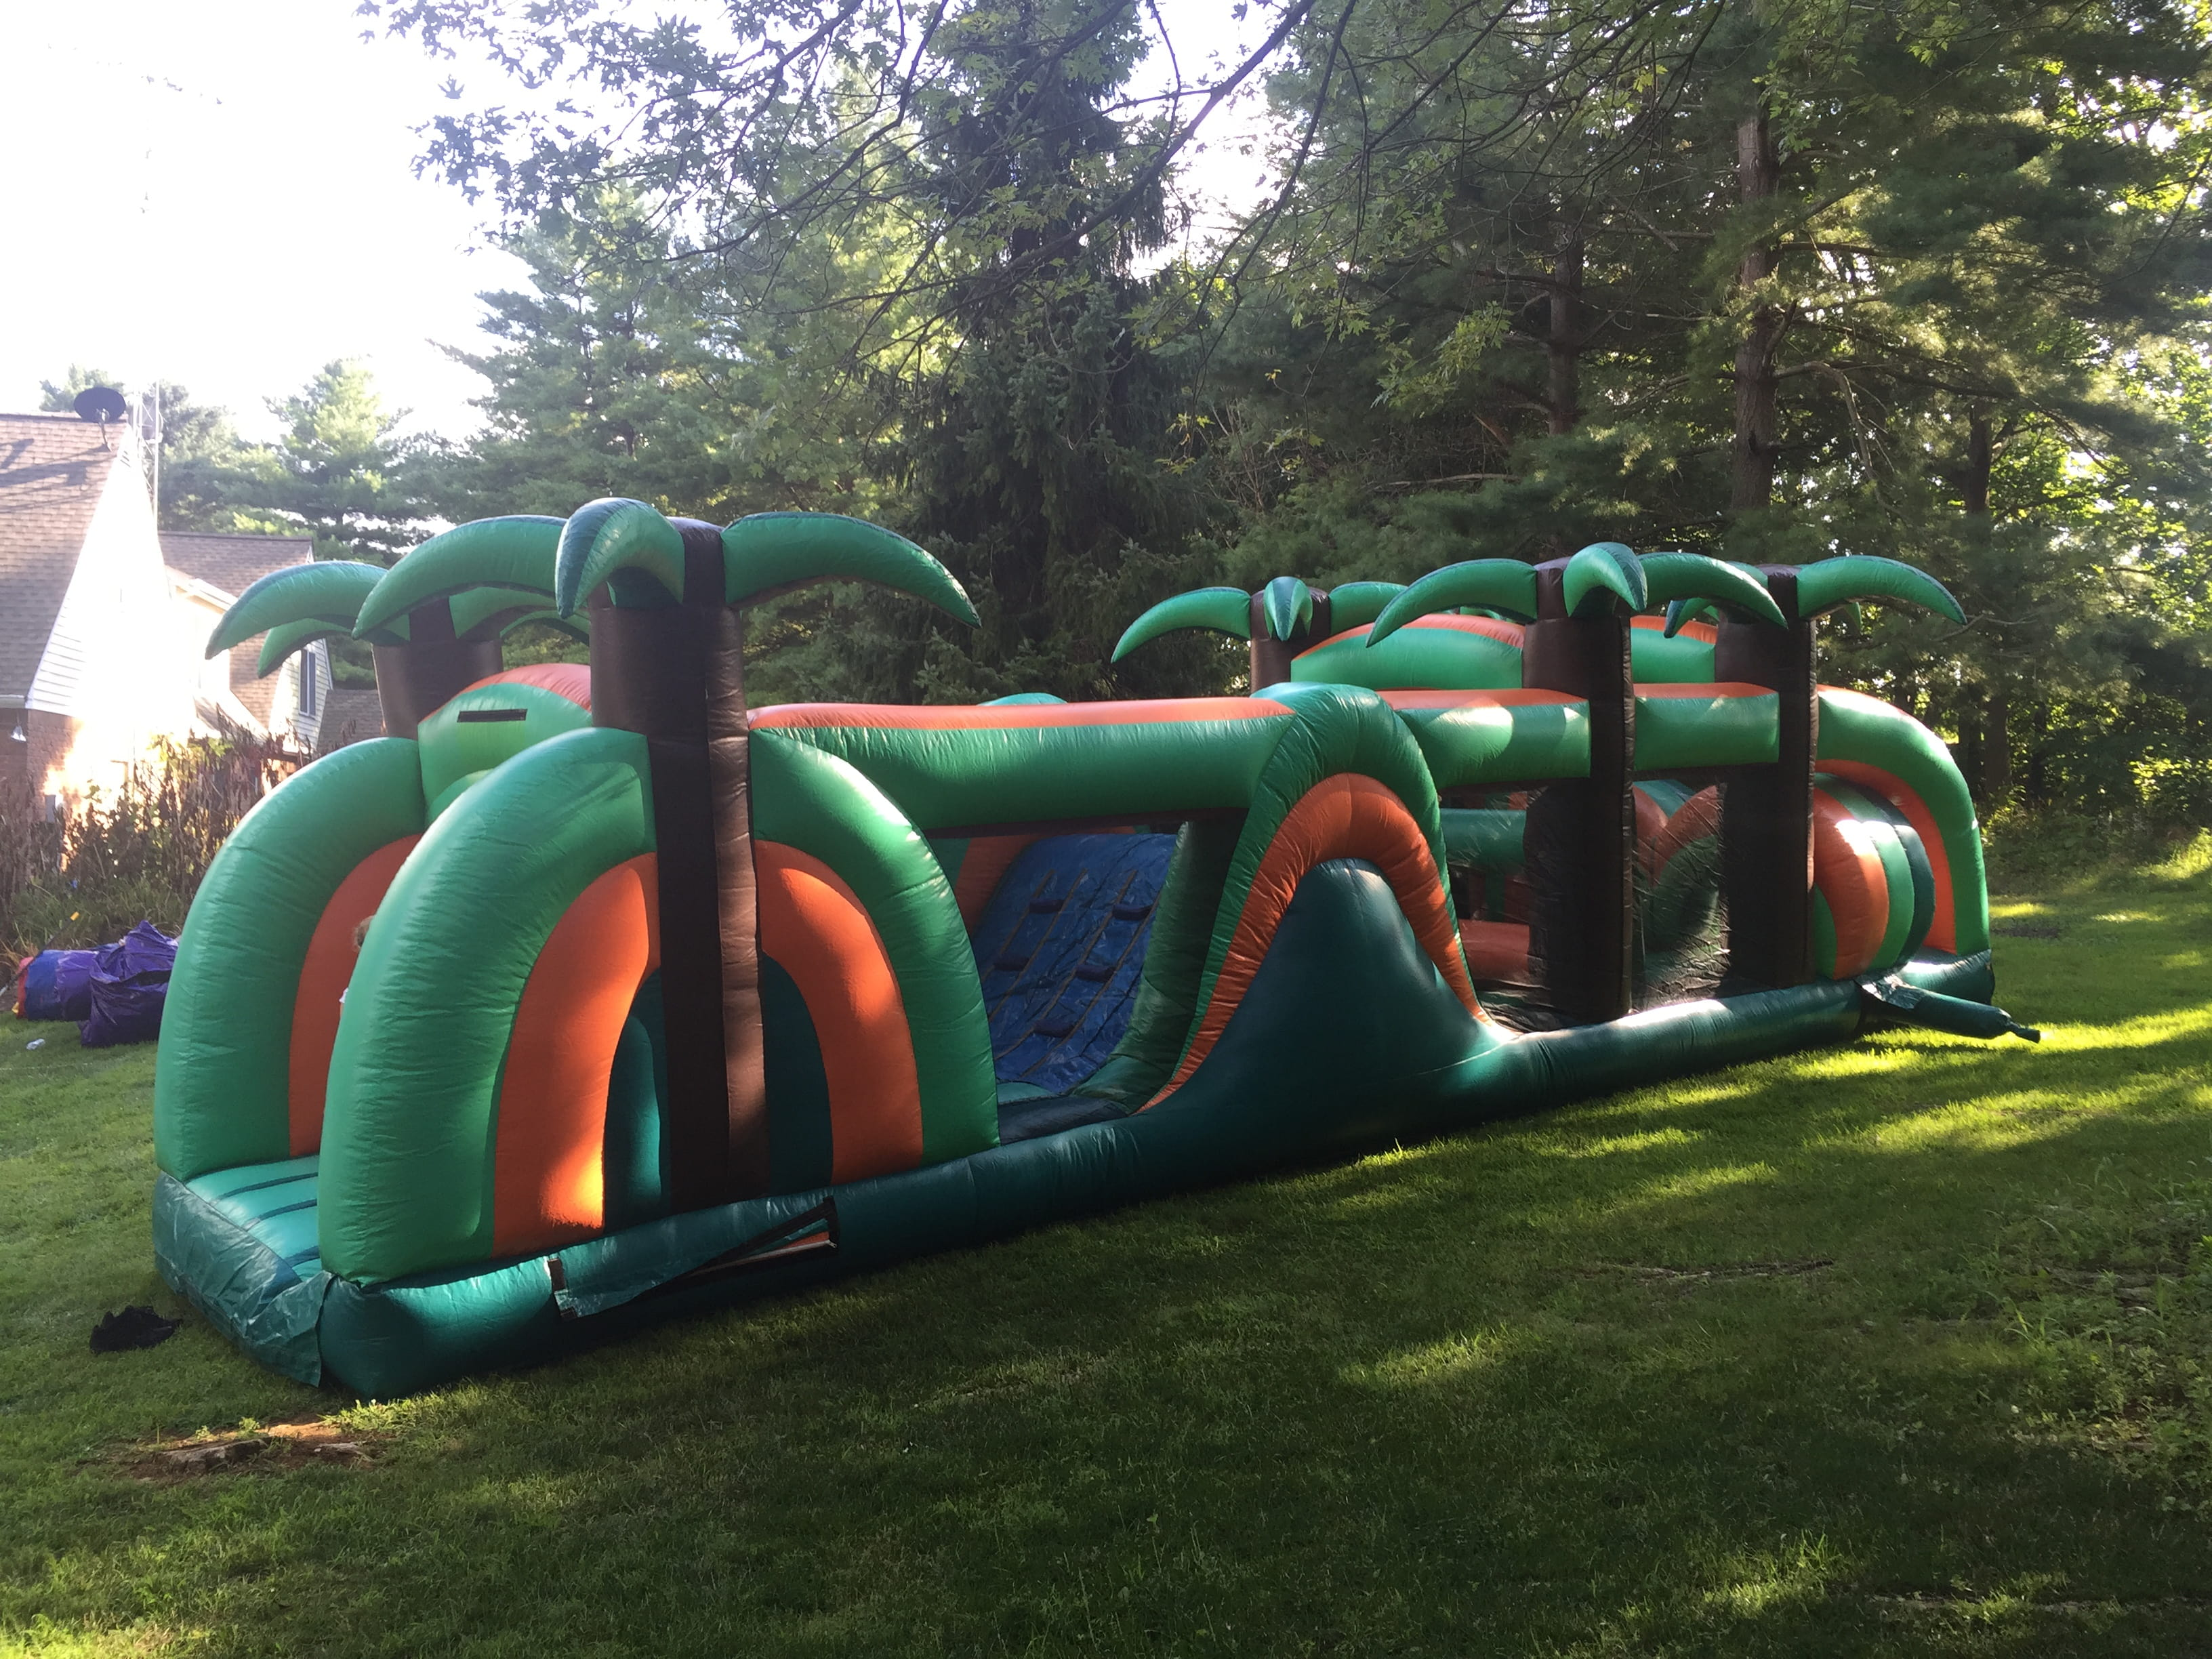 40-Foot Tropical Obstacle Course